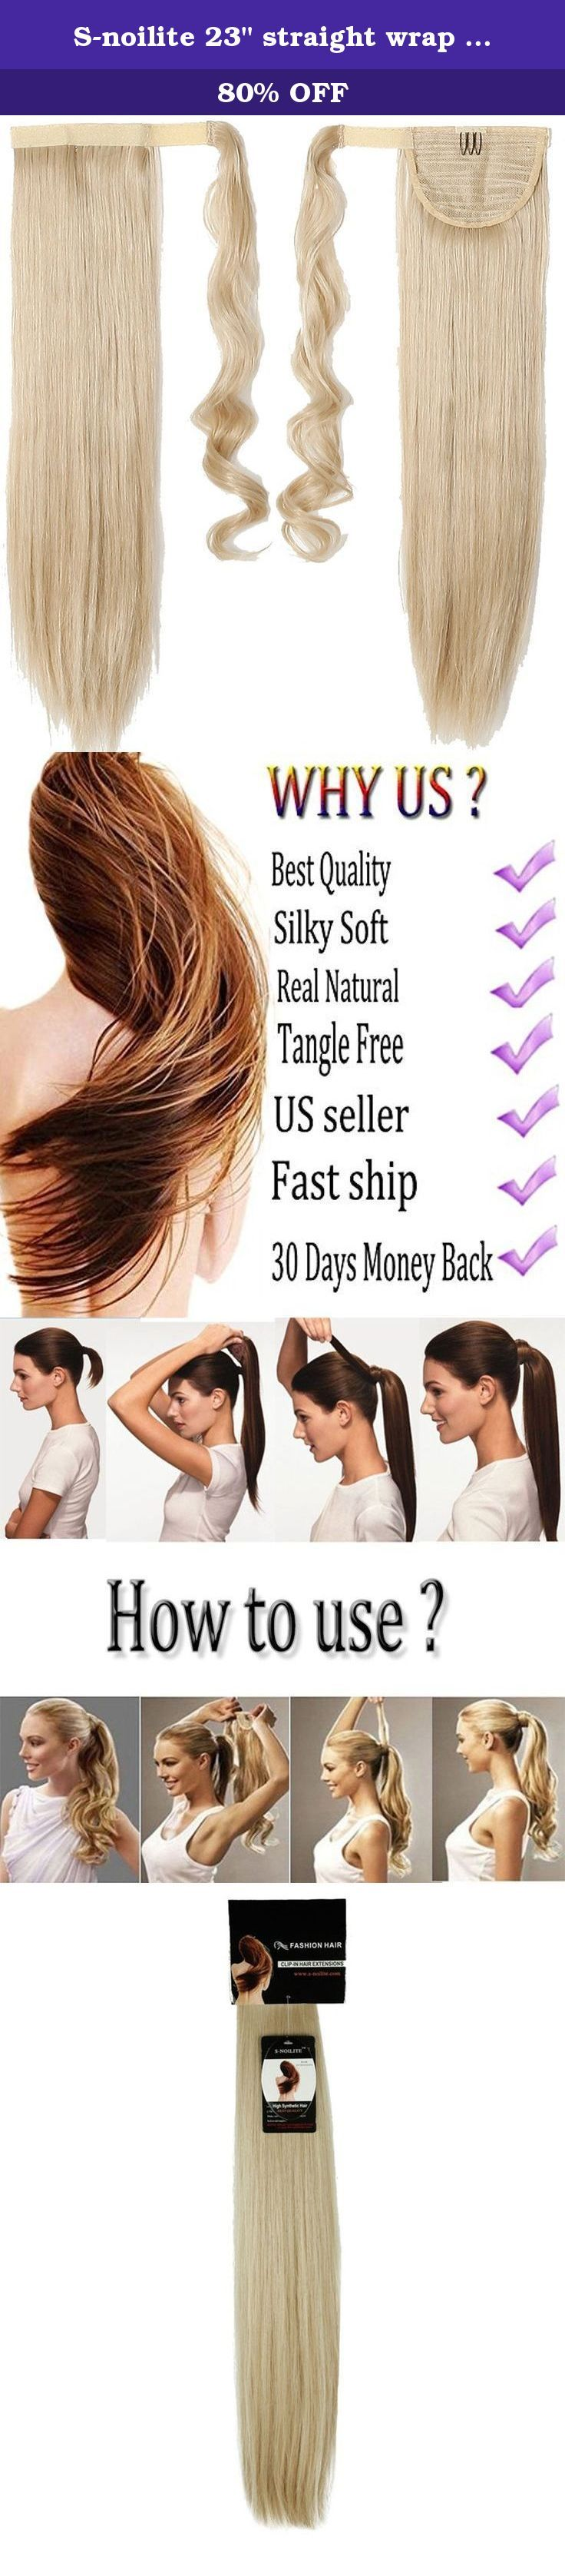 "S-noilite 23"" straight wrap around on ponytail clip in hair extensions pony tail synthetic hairpiece for women girls(dark blonde mix bleach blonde). This is a one piece wrap around on ponytail clip in hair extensions made from premium synthetic fibres, fashion style. There are one hair clip and side piece with velcro strap along the top for attaching around easily. You can fit them yourself in the mirror, and have them in and a new style ready to go in minutes. This item is ideal for..."